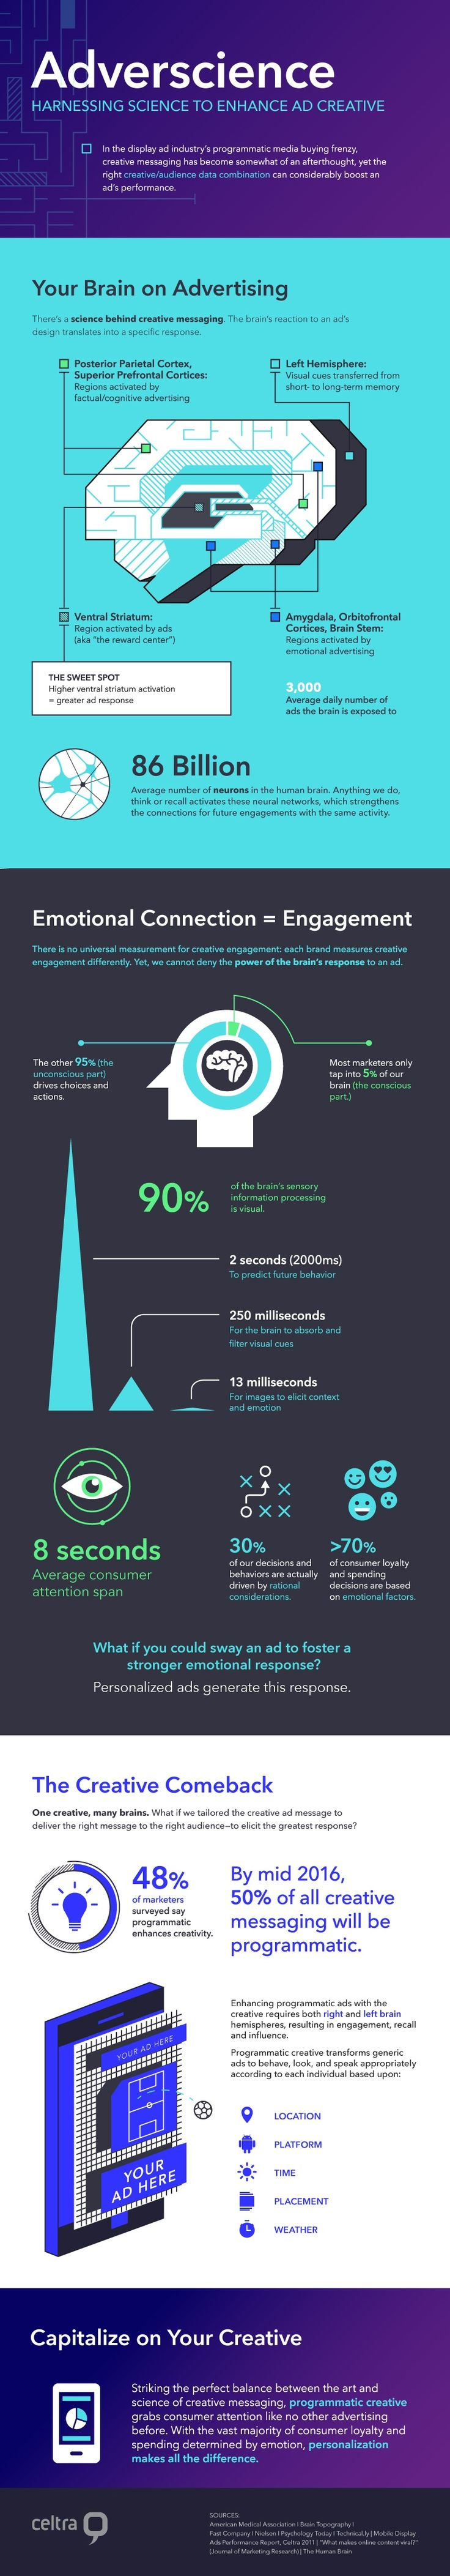 54 best infographic on visual communication images on Pinterest ...